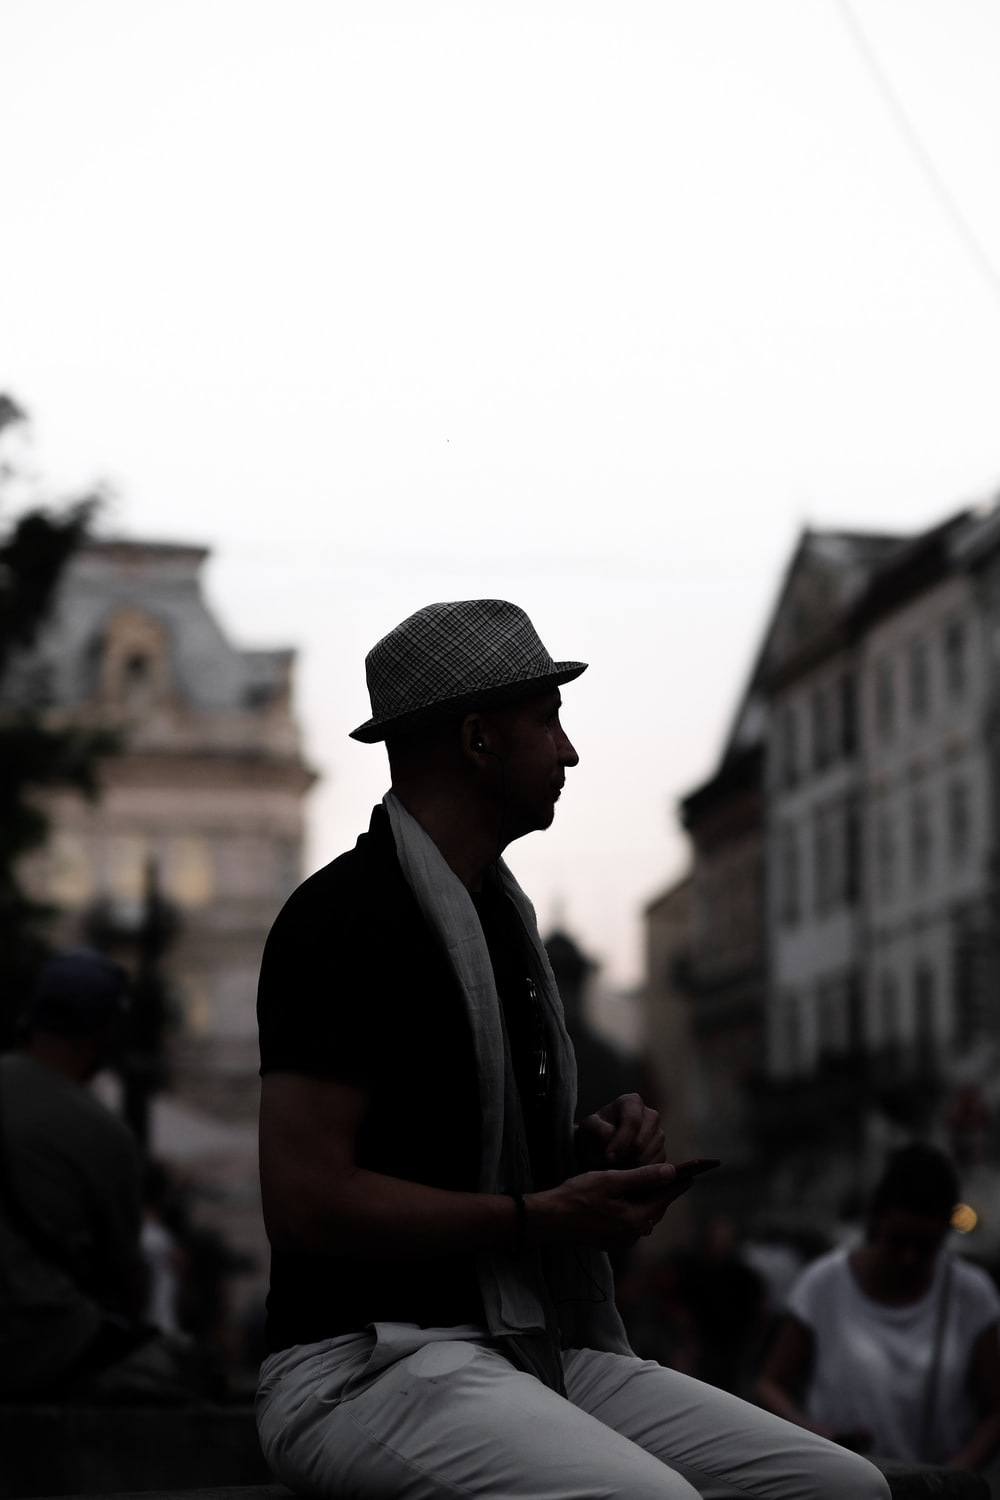 silhouette of sitting man next to person who wearing white shirt during daytime